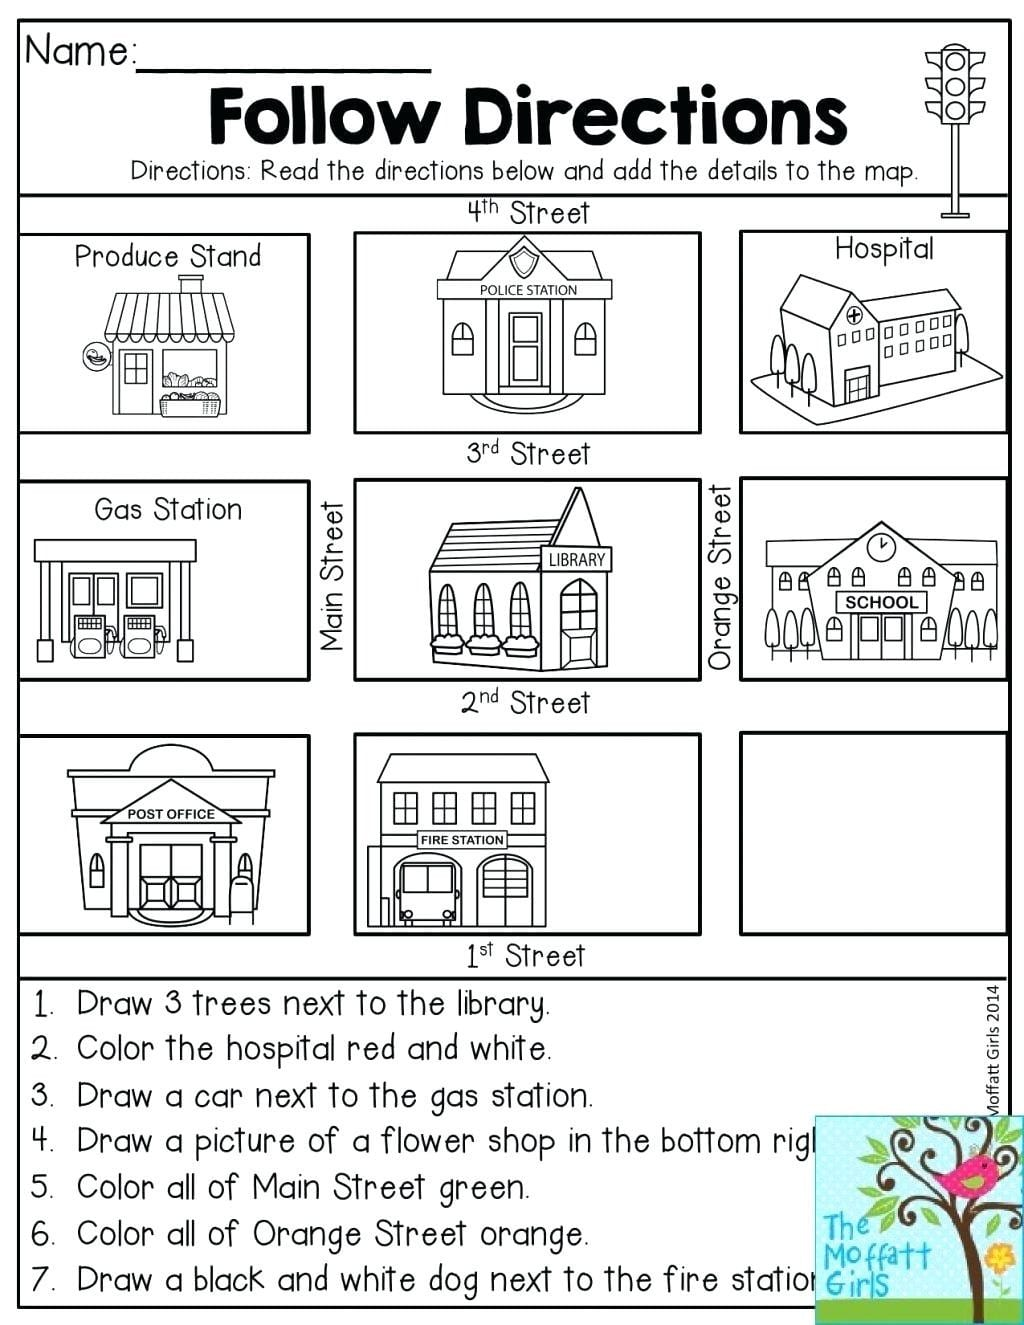 Second Grade Map Skills Worksheets Redbirdcolorco